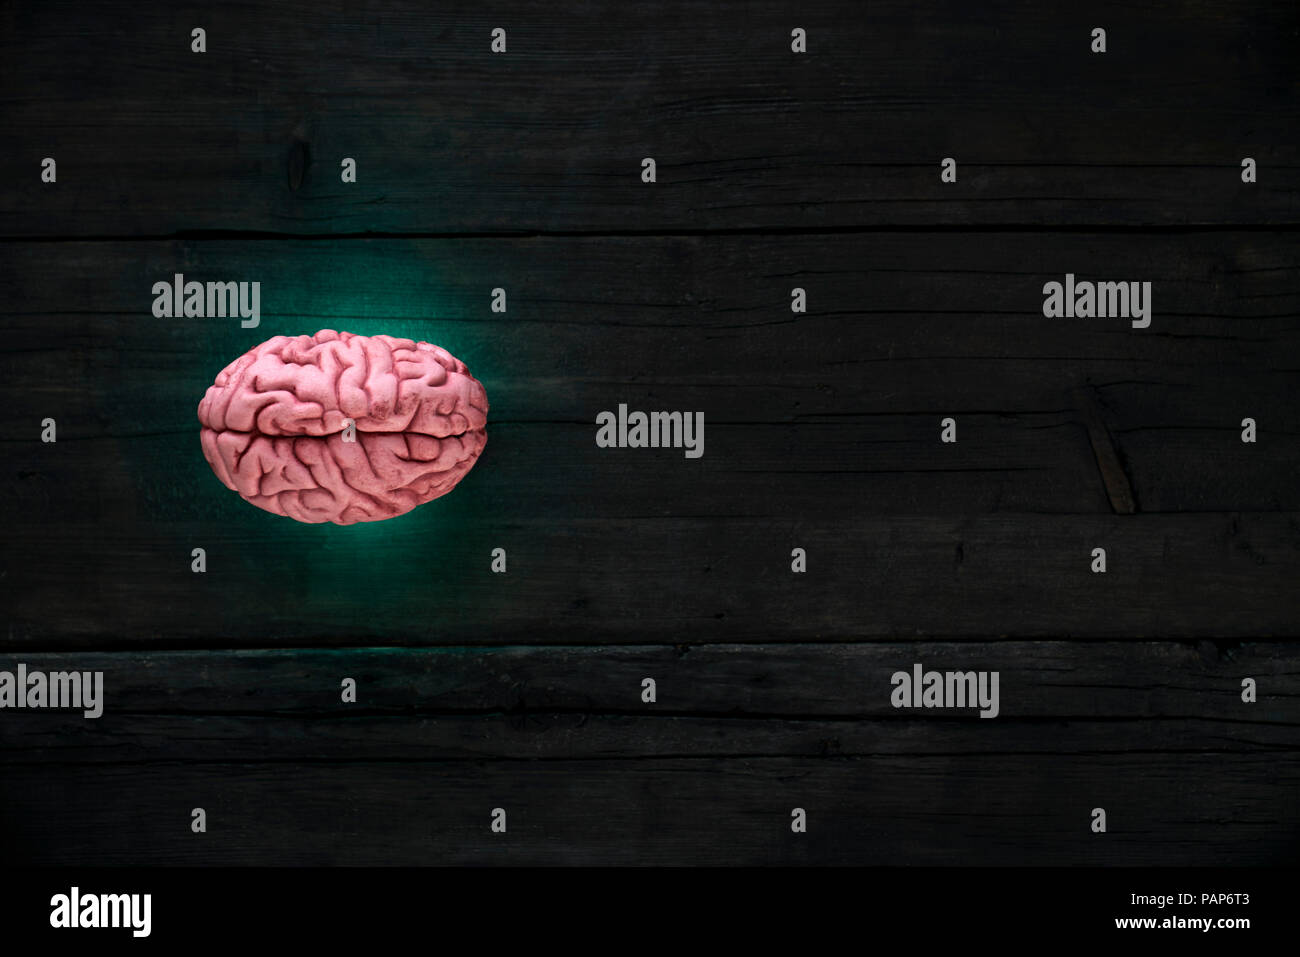 Artificial intelligence, brain gleaming - Stock Image